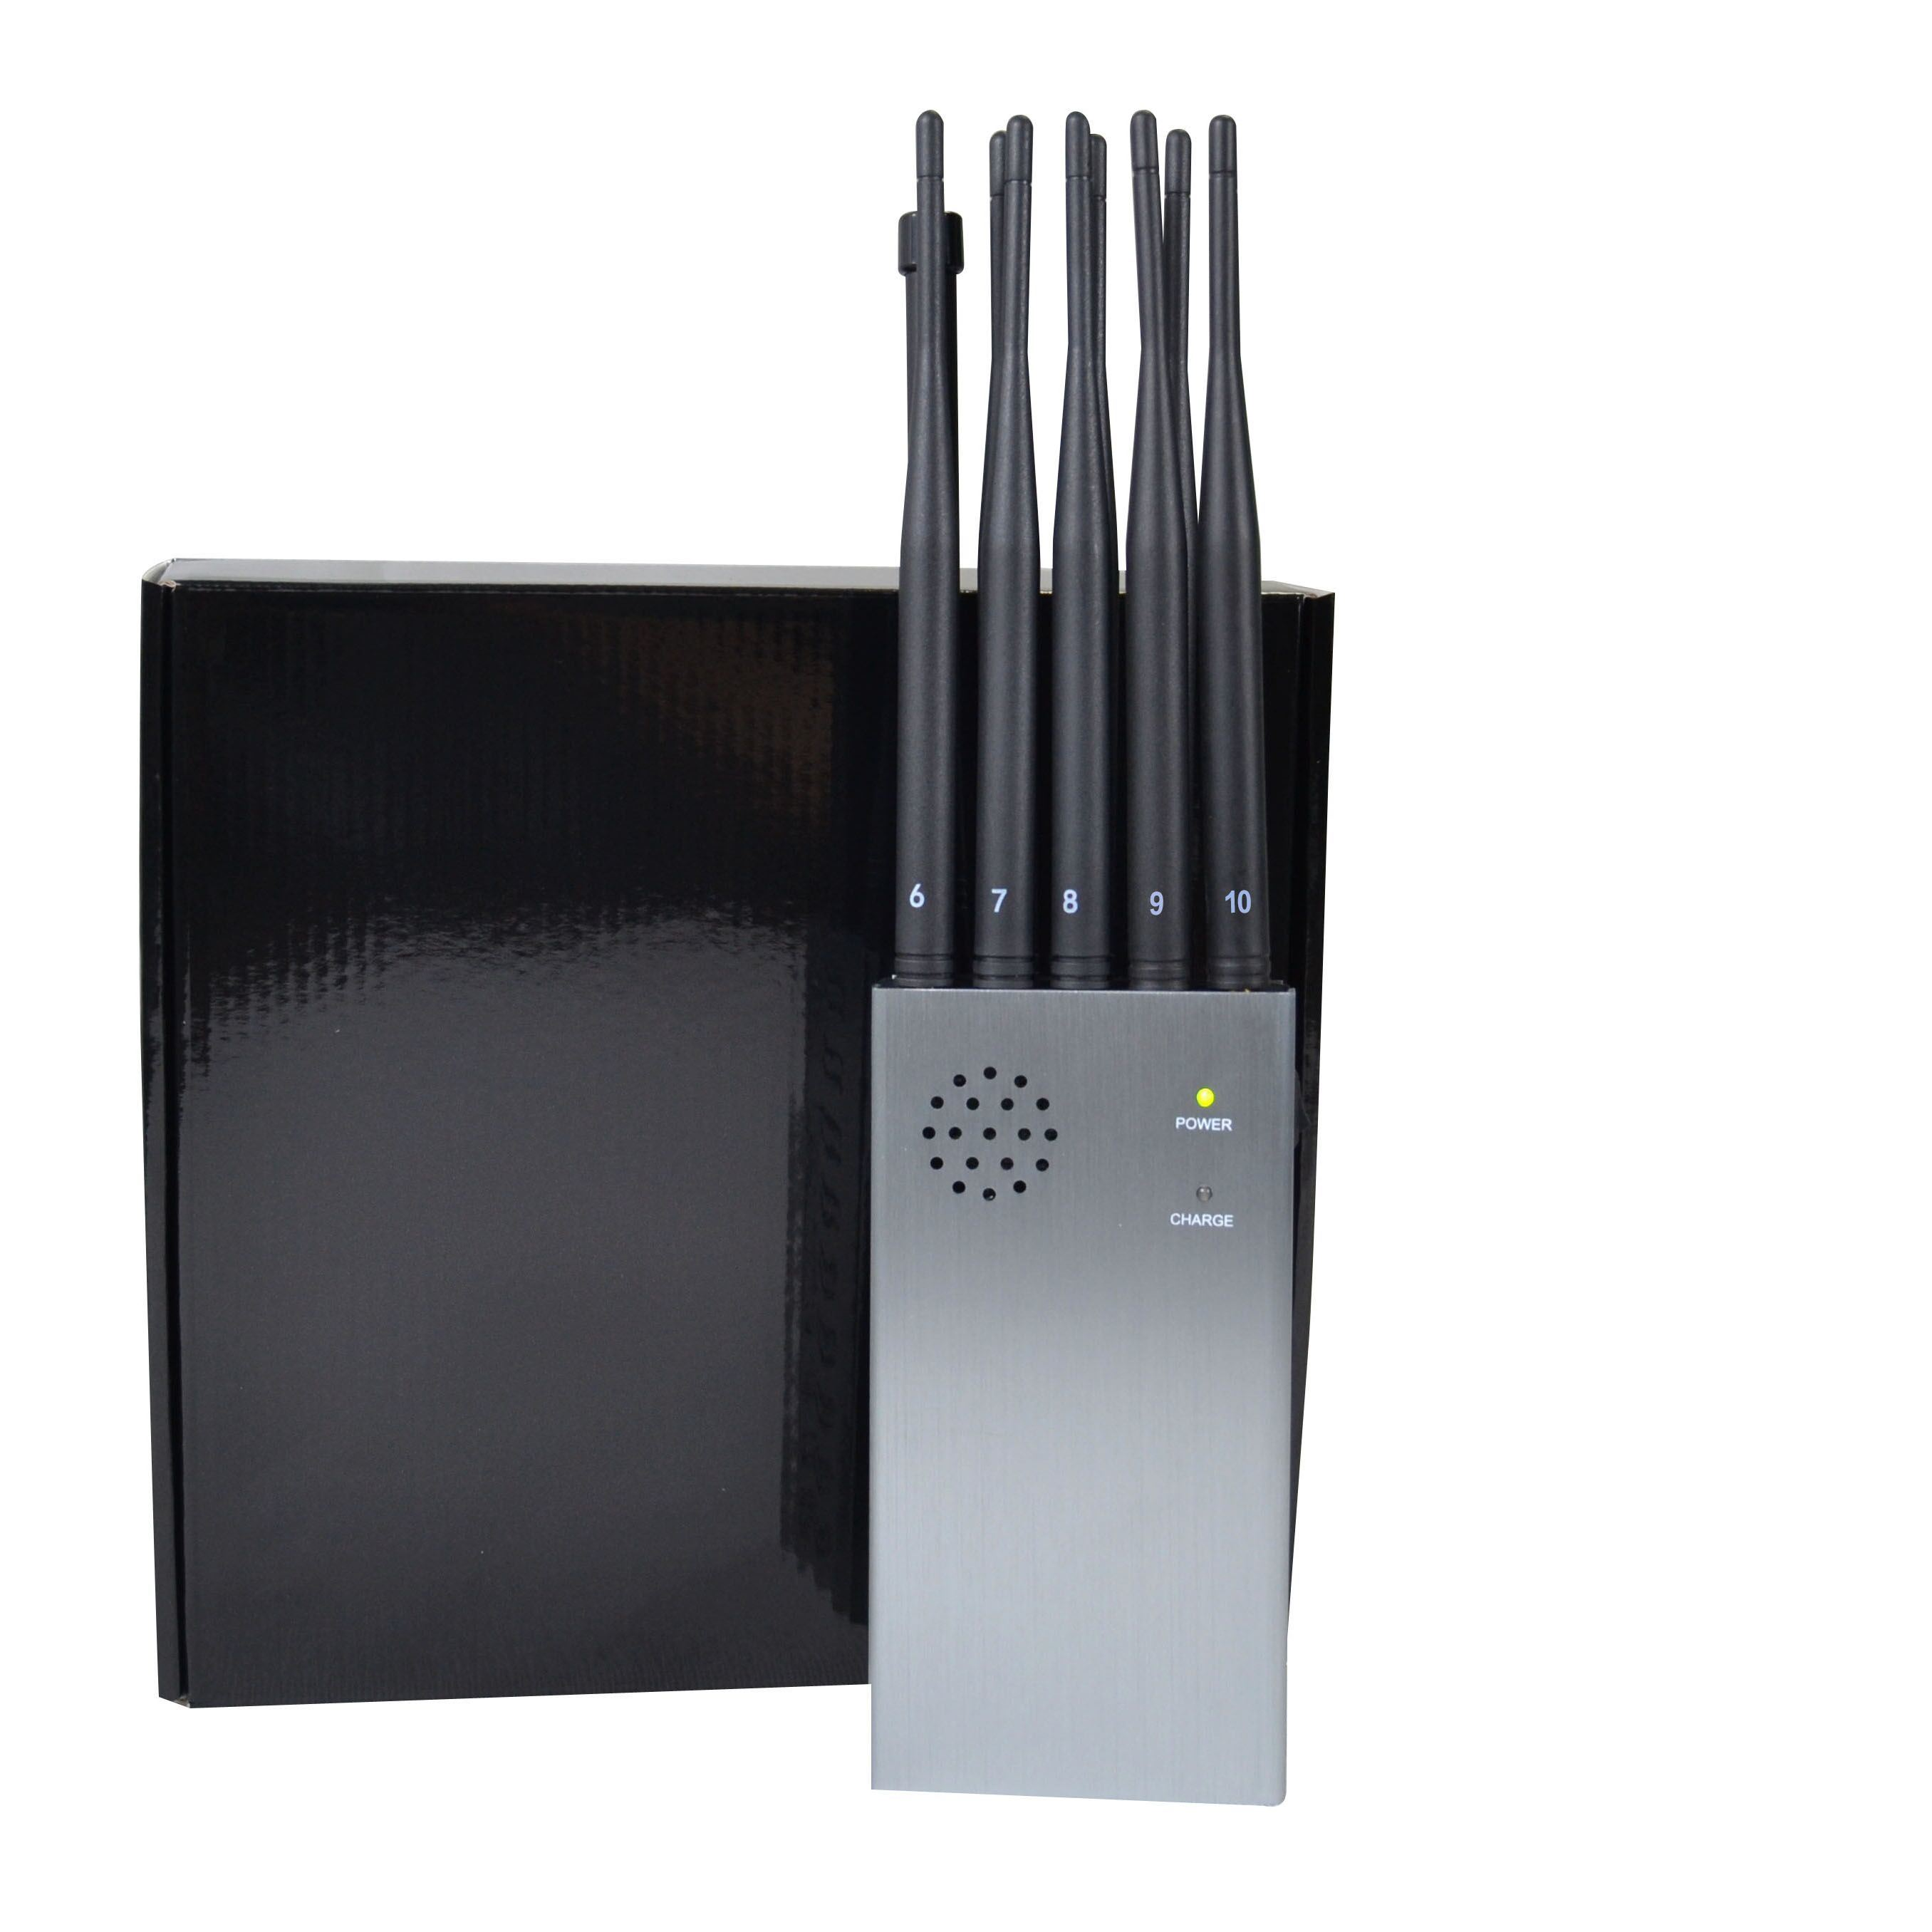 8 watt cell phone jammer portable